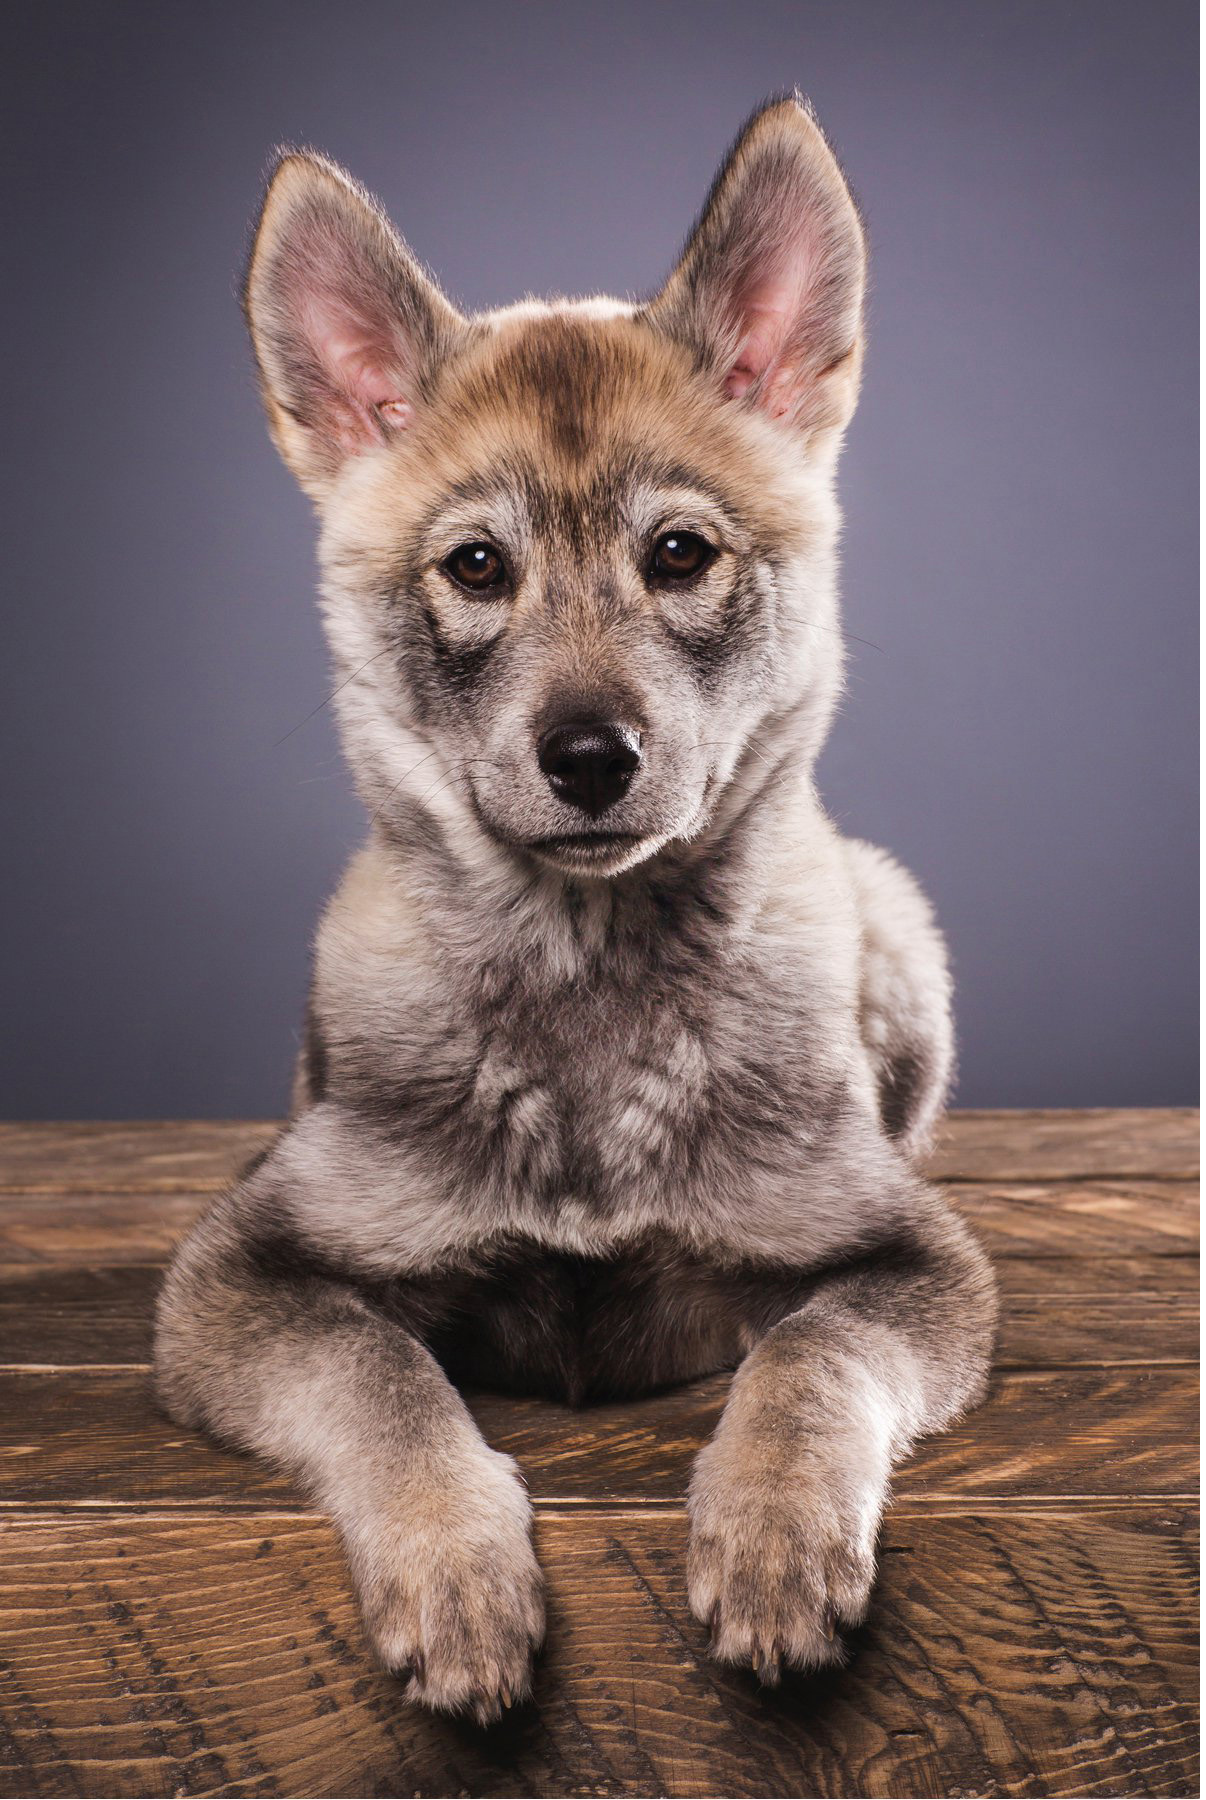 coloradopetphotographerstudiohuskiepuppy